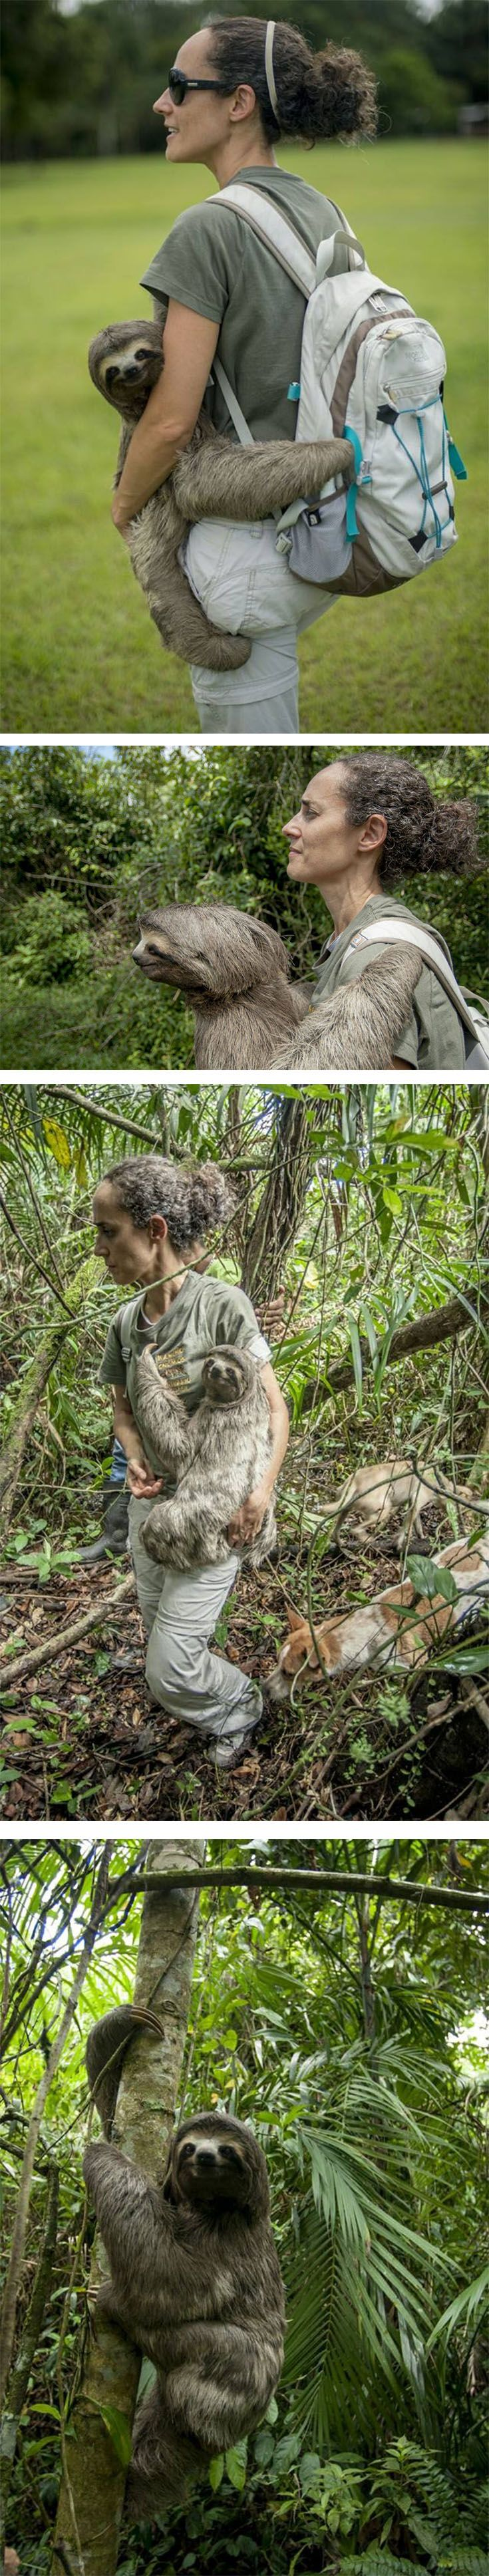 It's said that a picture is worth a thousand words — but some photos, like these showing a lost sloth being returned to freedom, speak volumes on their own.